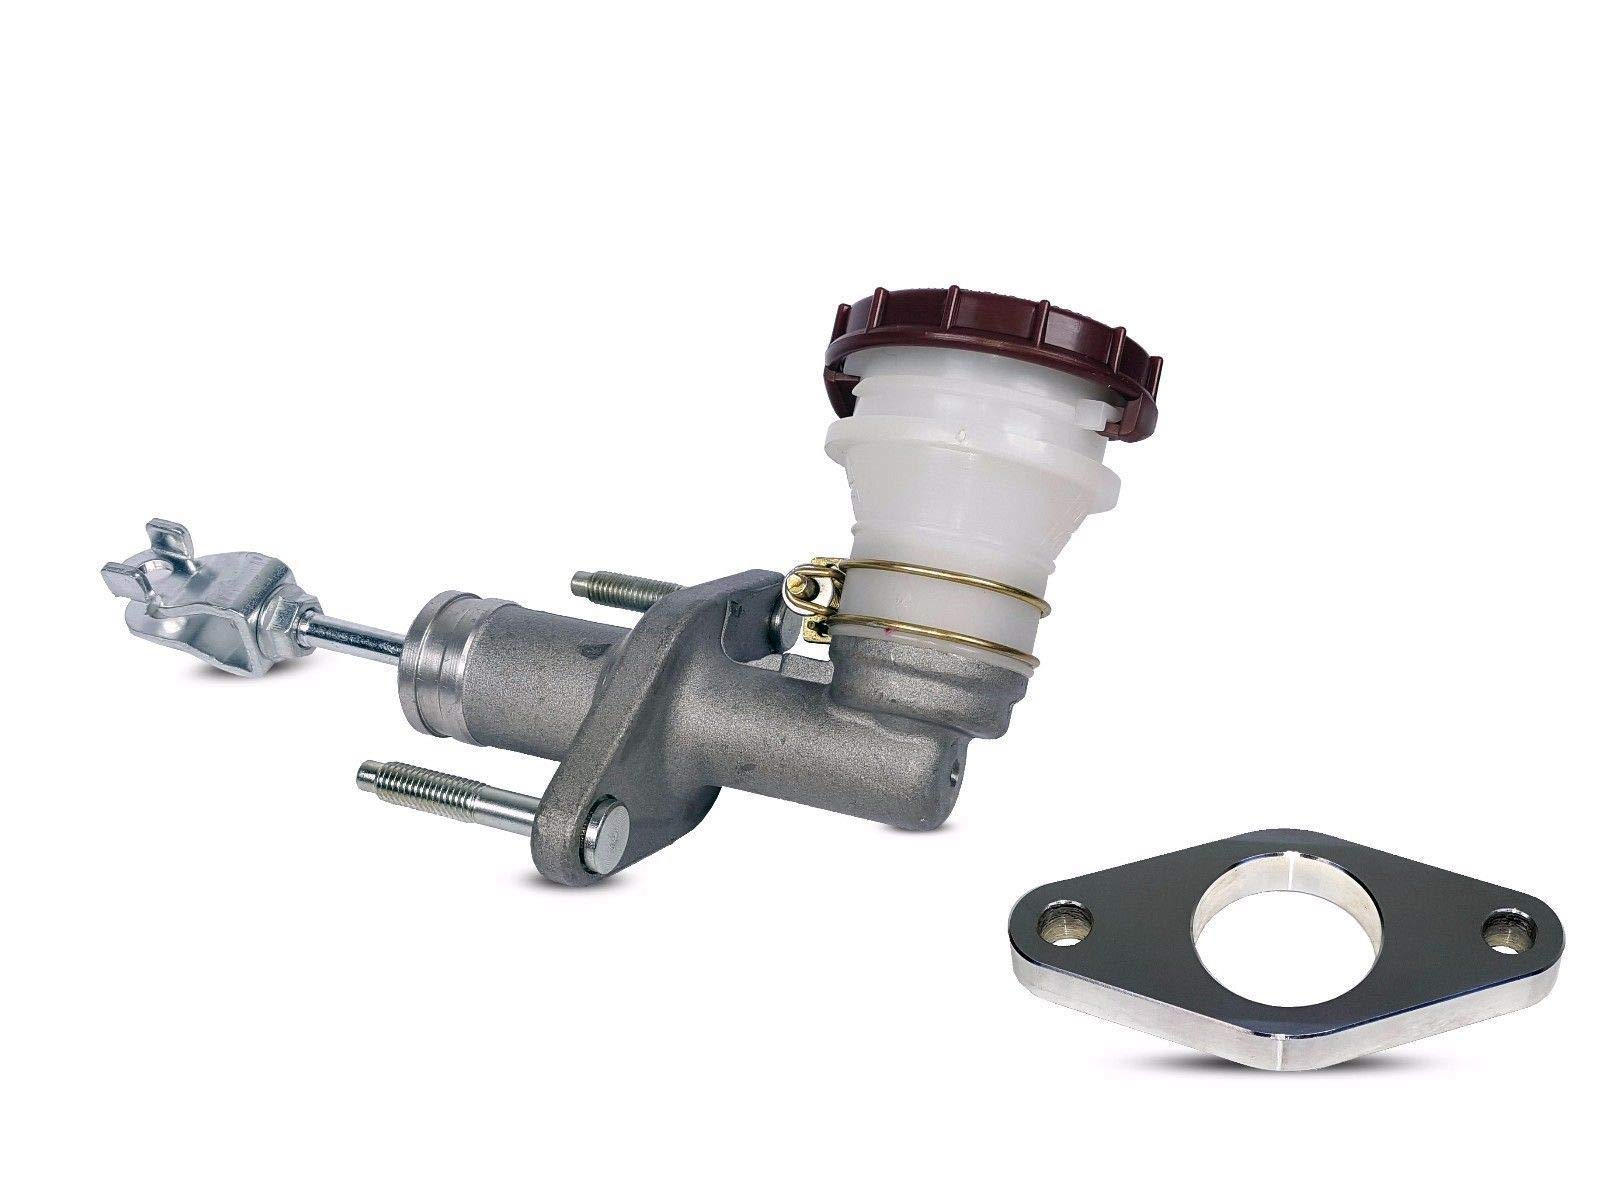 Clutch Master Cylinder With Adapter works with Acura Integra Honda Civic Si Gs Gs-R Ls Type R Hatchback Sedan Coupe 1994-2001 1.6L L4 1.8L L4 (B18B1; B16A2)